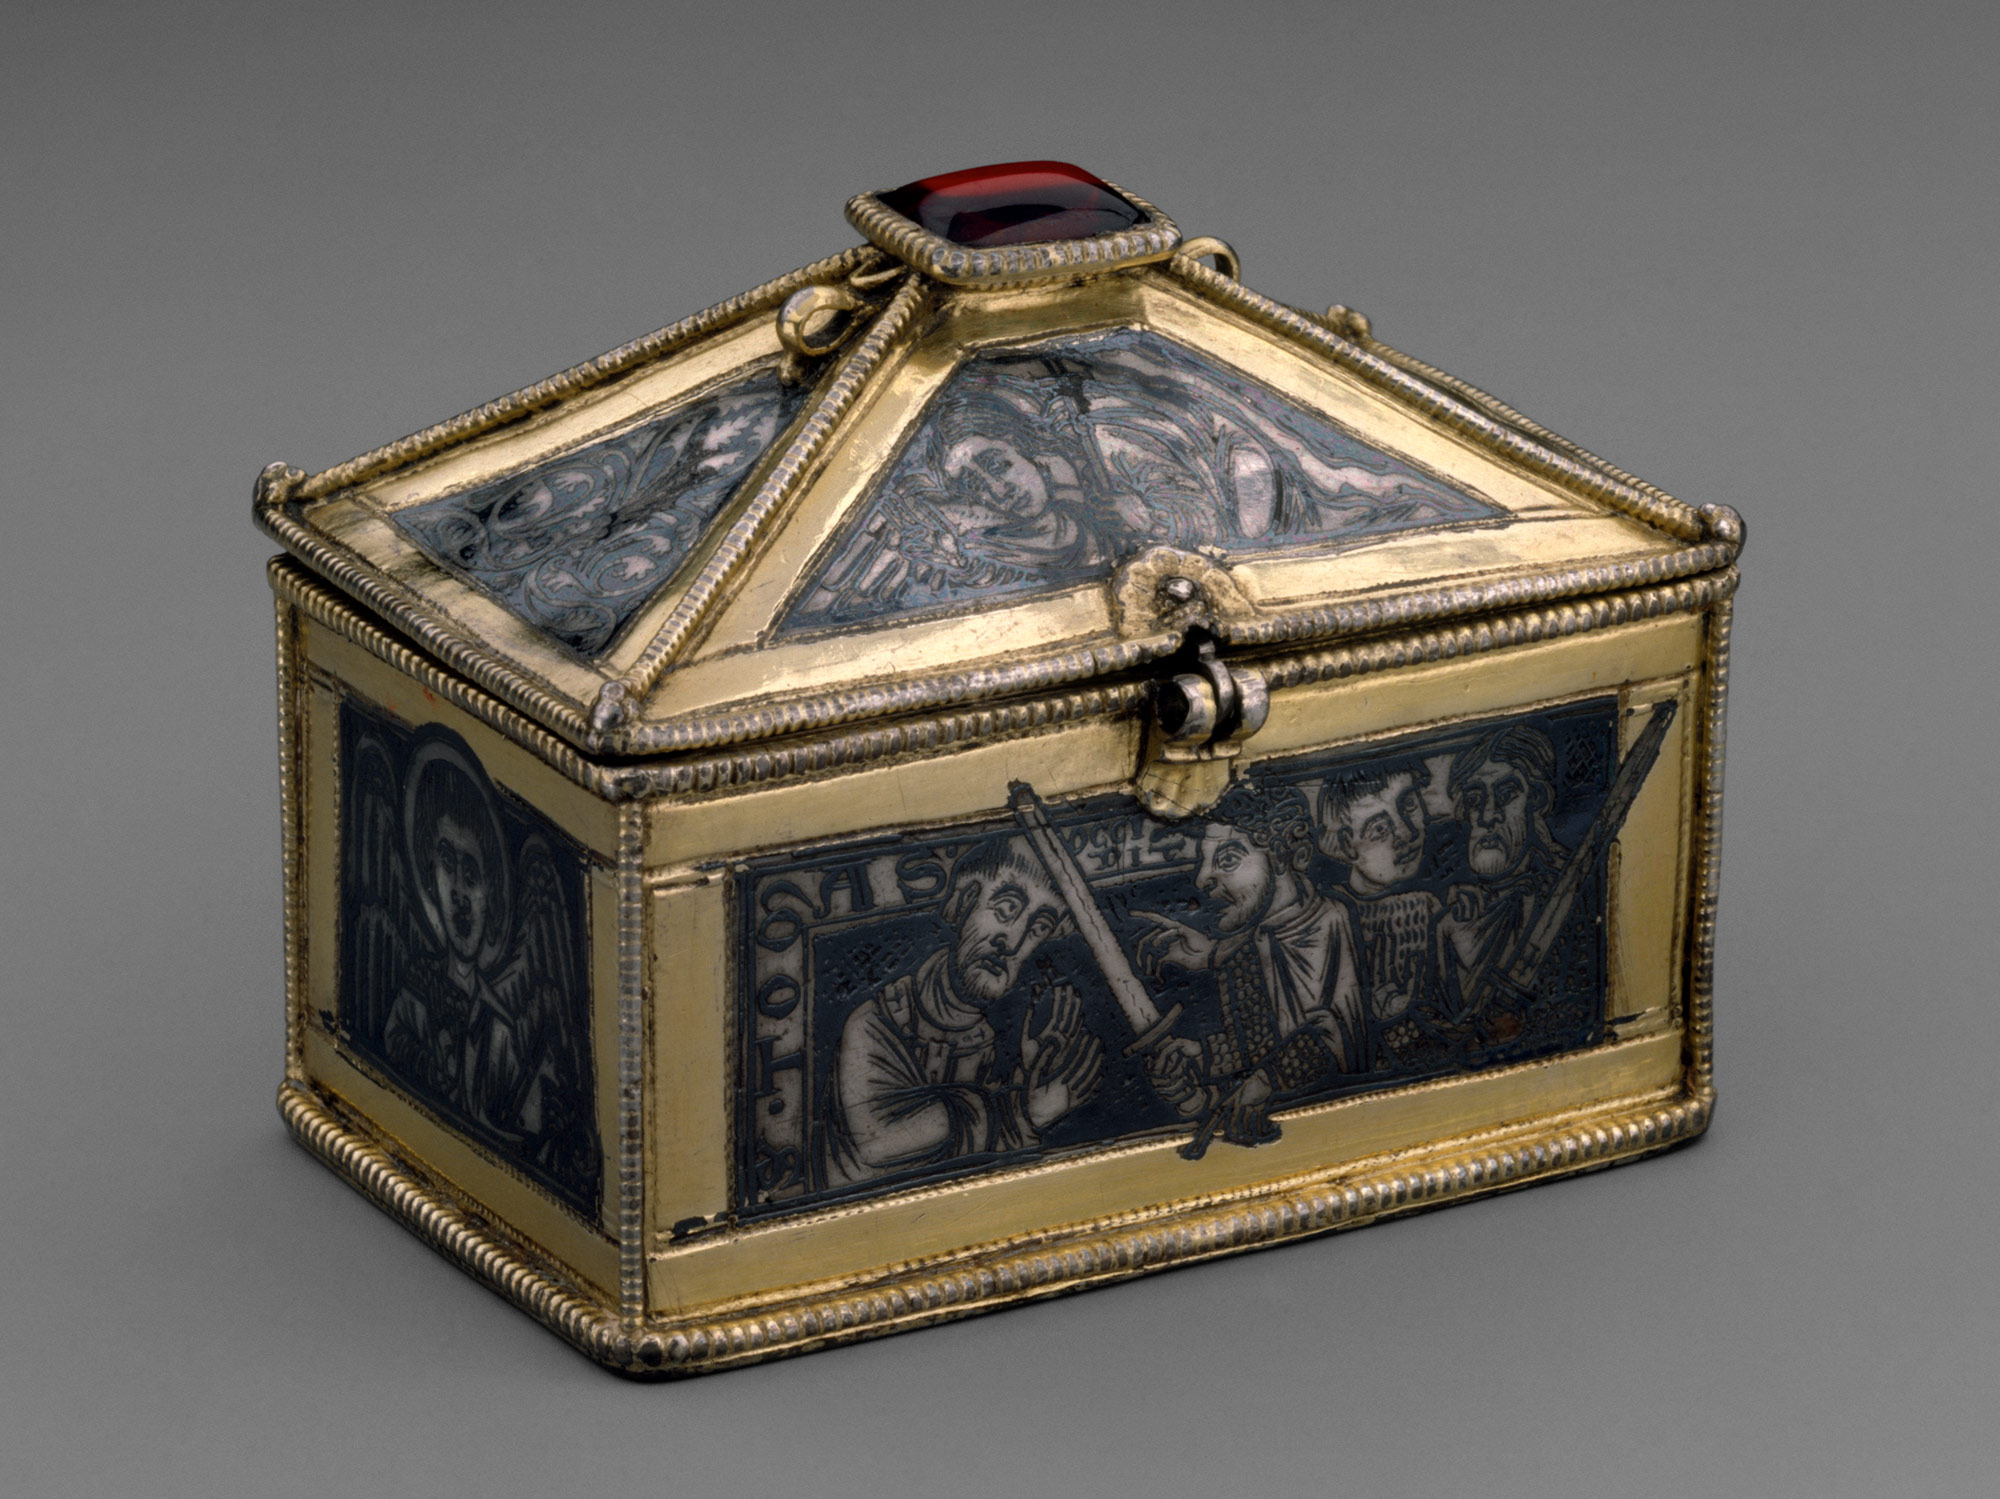 Reliquary Casket with Scenes from the Martyrdom of Saint Thomas Becket